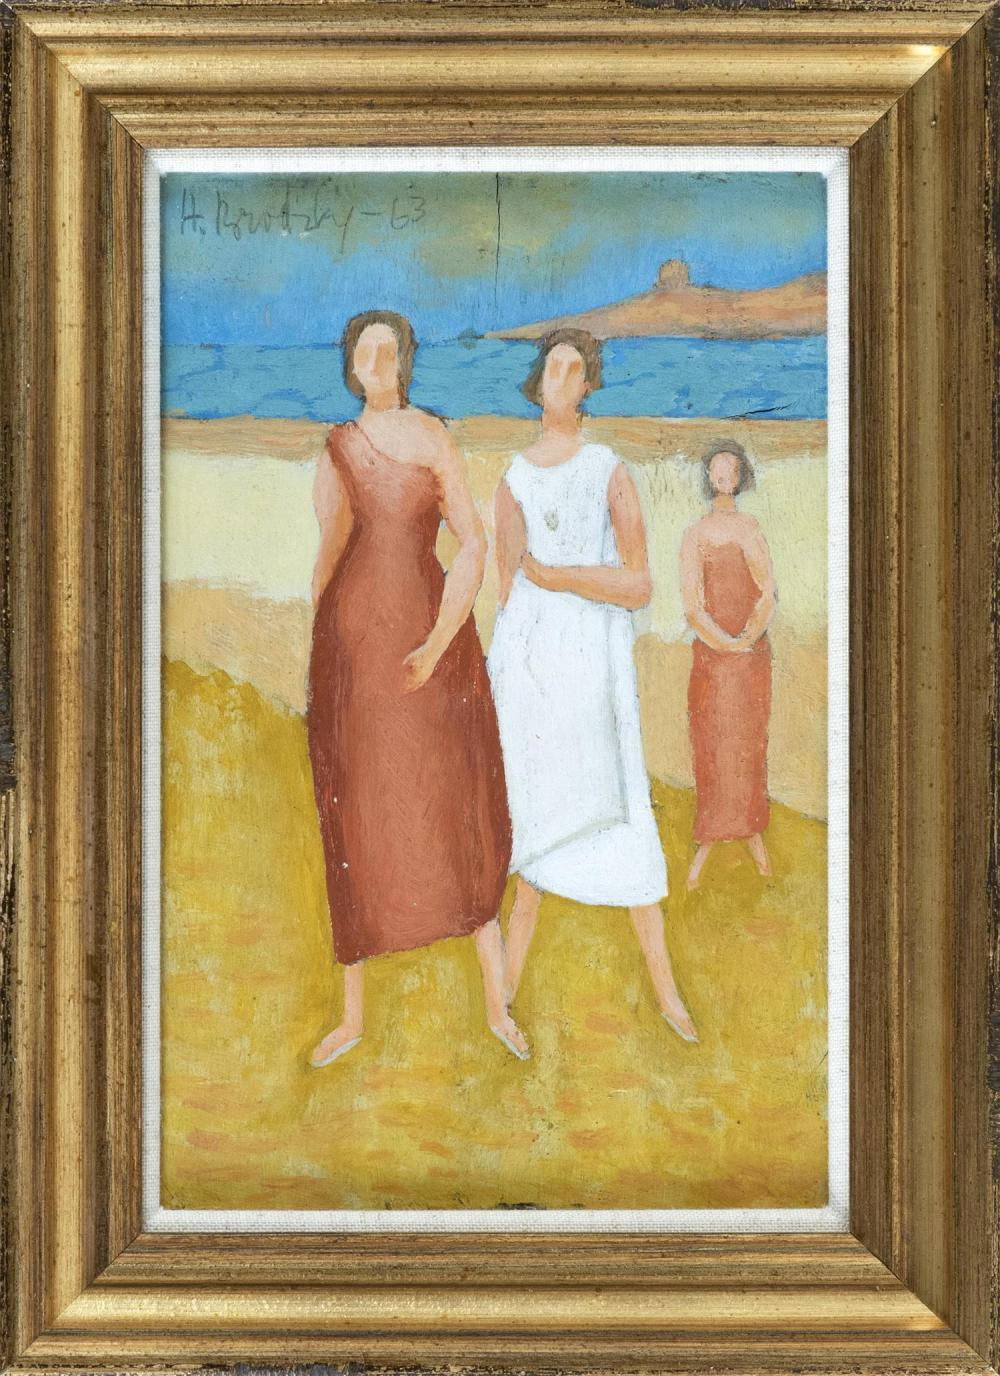 HORACE BRODZKY, New York/Australia, 1885-1969, Three female figures on the beach., Oil on panel, 9.5